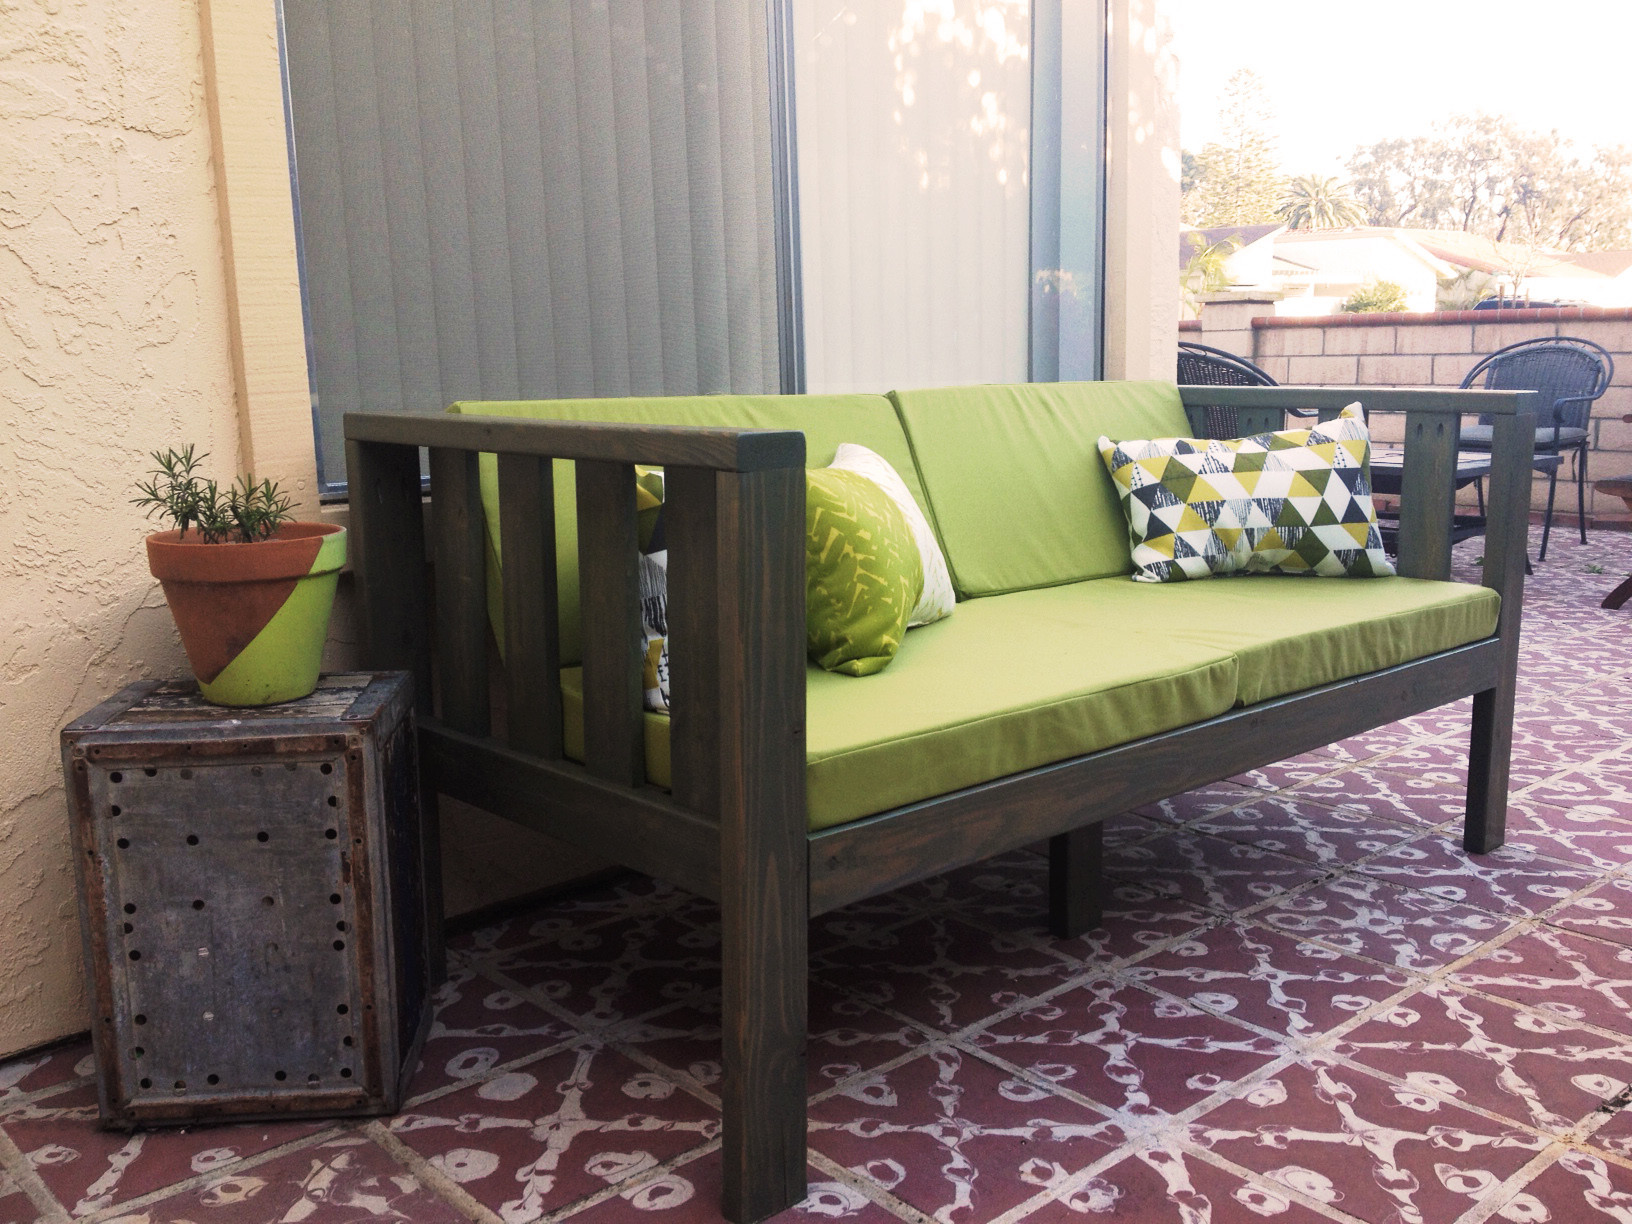 Best ideas about DIY Patio Cushions . Save or Pin Our DIY Patio Sofa – vivagood Now.